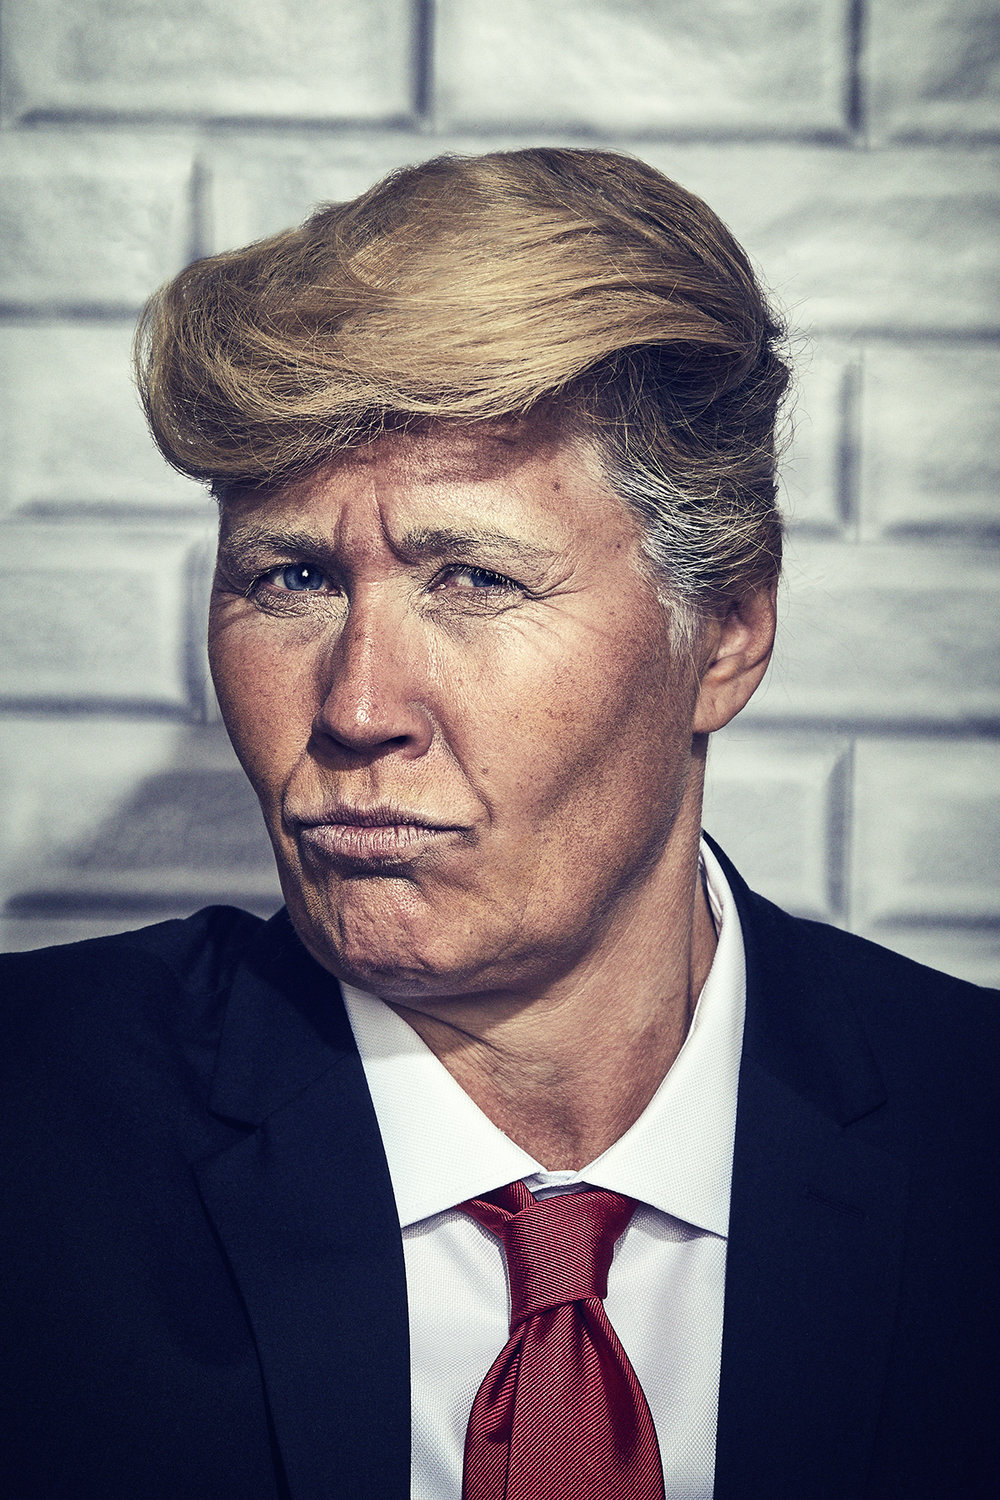 Donald Trump_4437, Anders Brinckmeyer_web.jpg